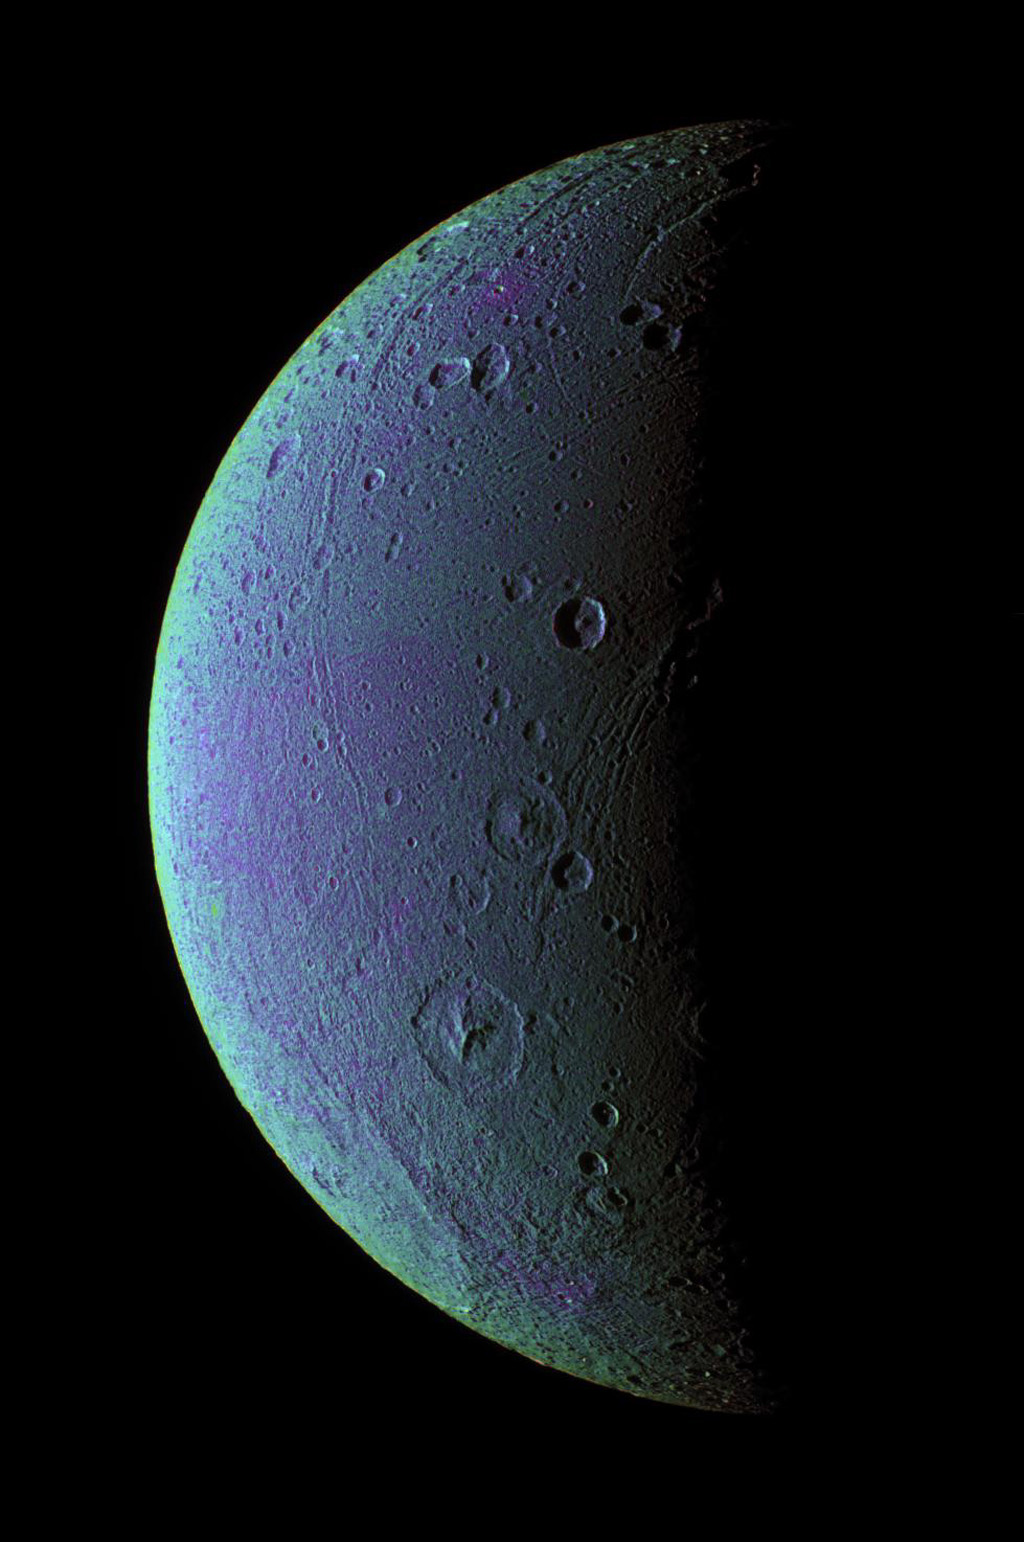 This view from NASA's Cassini spacecraft taken on Dec. 24, 2005, highlights tectonic faults and craters on Dione, an icy world that has undoubtedly experienced geologic activity since its formation.